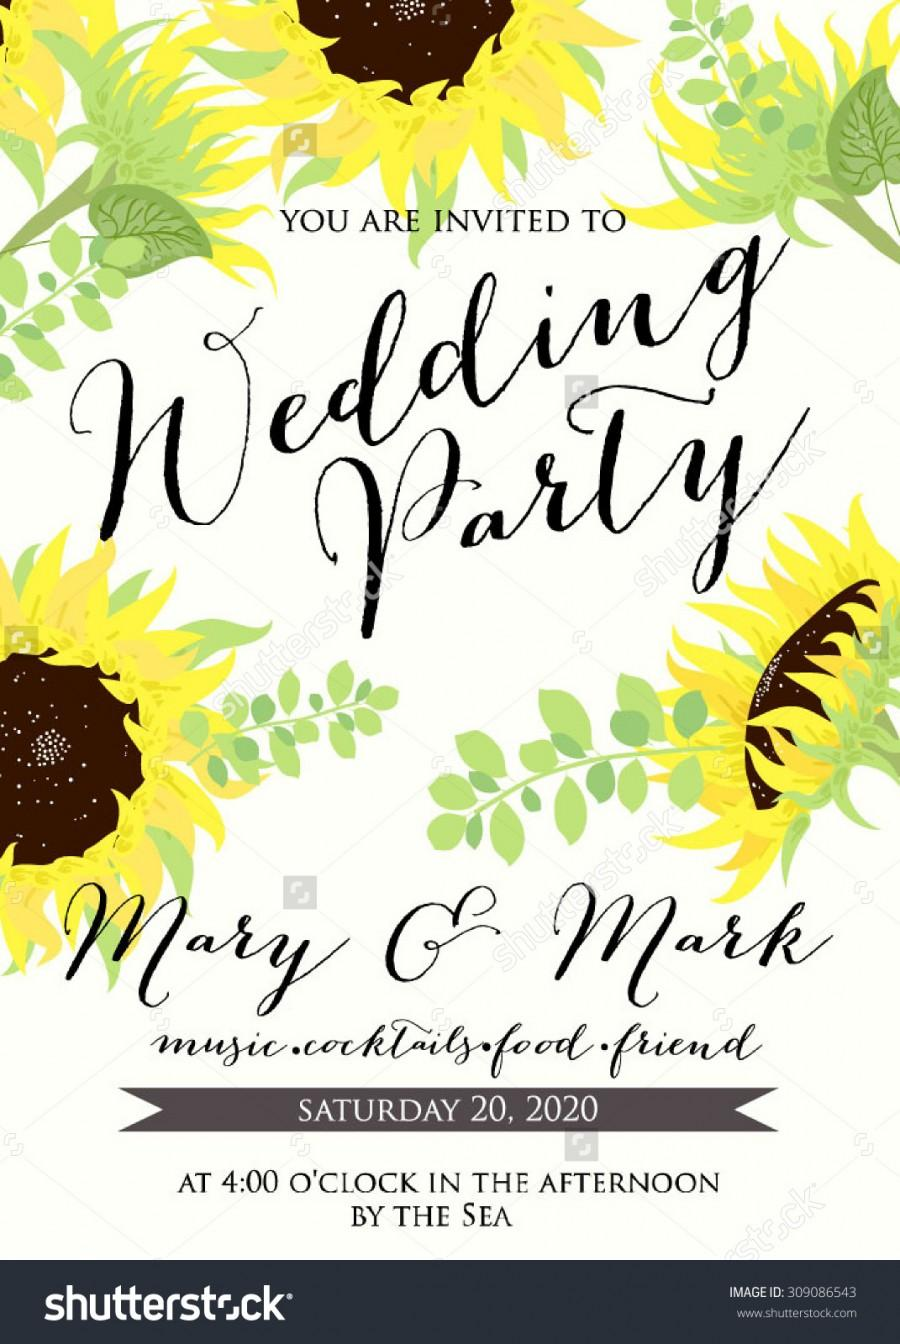 Wedding - Wedding card or invitation with floral background